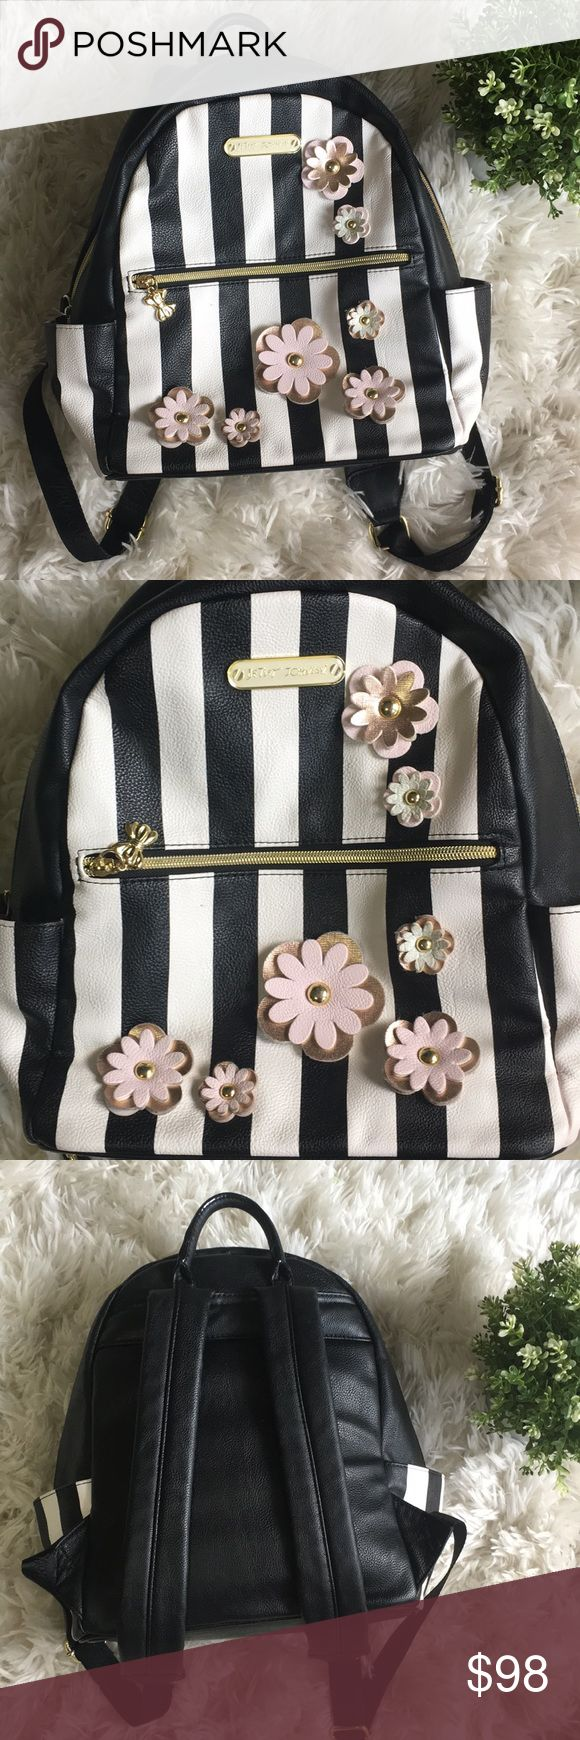 """Betsey Johnson backpack Betsey Johnson faux leather striped/floral black and ivory midsize backpack. Interior features 1 zip pocket, 1 large slip pocket & 1 key finder. Exterior features gold hardware, zip pocket & 2 slip pockets. Rare find on Poshmark. In excellent condition! Pictures speak for themselves. Smoke and pet free home. 13"""" wide, 12"""" height, 5"""" depth, 4"""" long top handle, 13"""" L-18"""" L adjustable backpack straps. Reasonable offers✅ Betsey Johnson Bags Backpacks"""